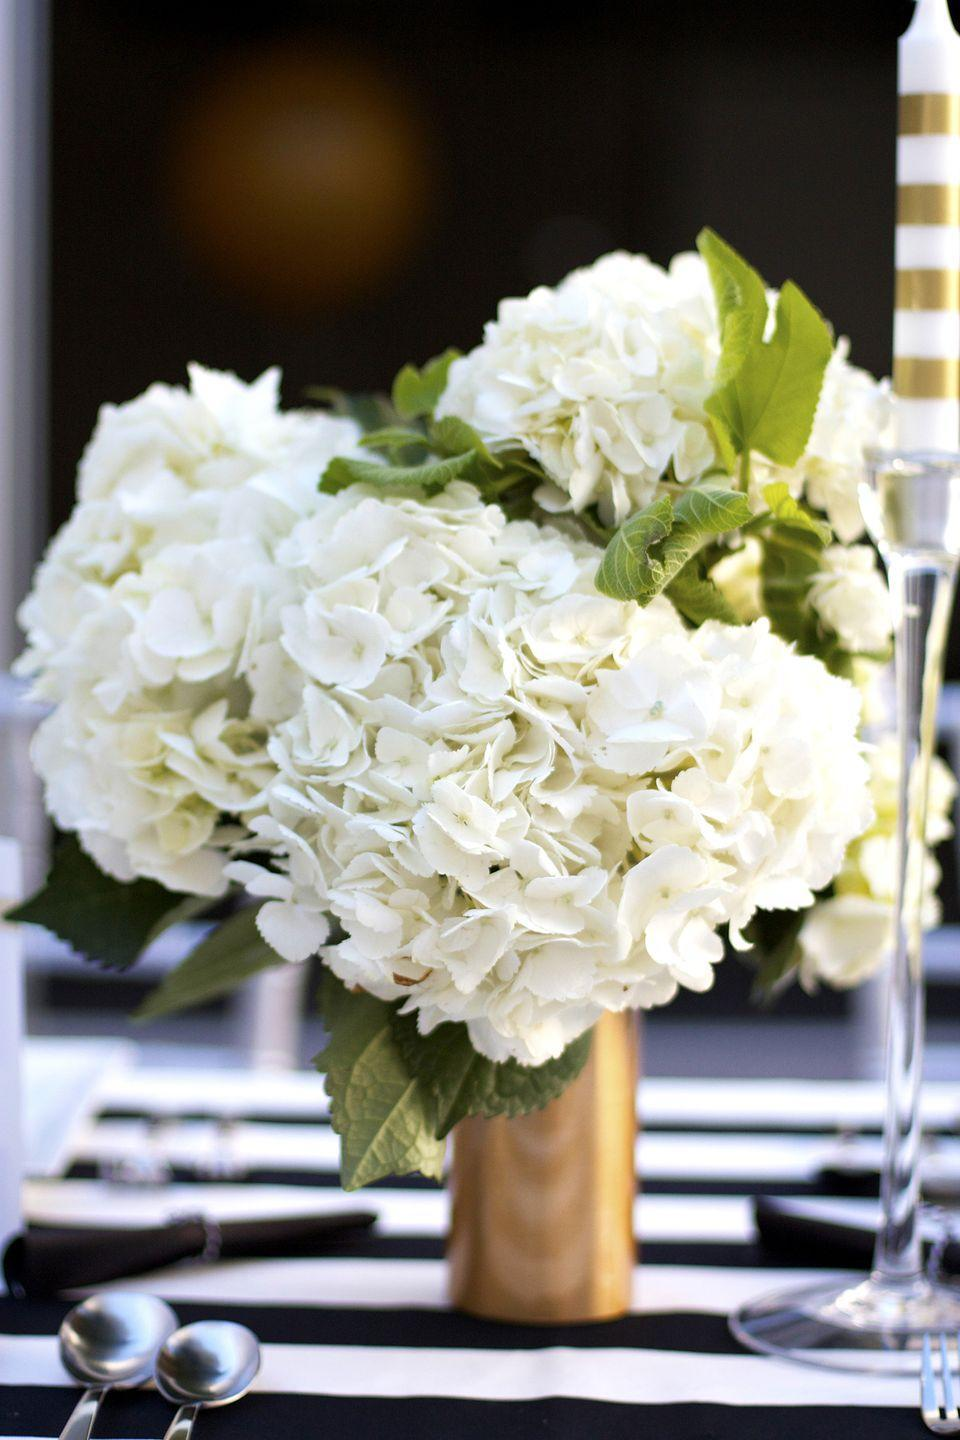 "<p>Gold just seems like the perfect hue to include in a graduation party color palette. Make a handful of these vases and decorate each table.</p><p><strong>Get the tutorial at <a href=""https://www.kristimurphy.com/blog/diy-gold-vase"" rel=""nofollow noopener"" target=""_blank"" data-ylk=""slk:Kristi Murphy"" class=""link rapid-noclick-resp"">Kristi Murphy</a>.</strong></p><p><a class=""link rapid-noclick-resp"" href=""https://go.redirectingat.com?id=74968X1596630&url=https%3A%2F%2Fwww.walmart.com%2Fip%2FEasyLiner-Adhesive-Laminate-20-In-x-6-Ft-Shelf-Liner-Glimmer-Gold%2F163268739&sref=https%3A%2F%2Fwww.thepioneerwoman.com%2Fhome-lifestyle%2Fentertaining%2Fg36014713%2Fgraduation-party-ideas%2F"" rel=""nofollow noopener"" target=""_blank"" data-ylk=""slk:SHOP GOLD CONTACT PAPER"">SHOP GOLD CONTACT PAPER</a></p>"